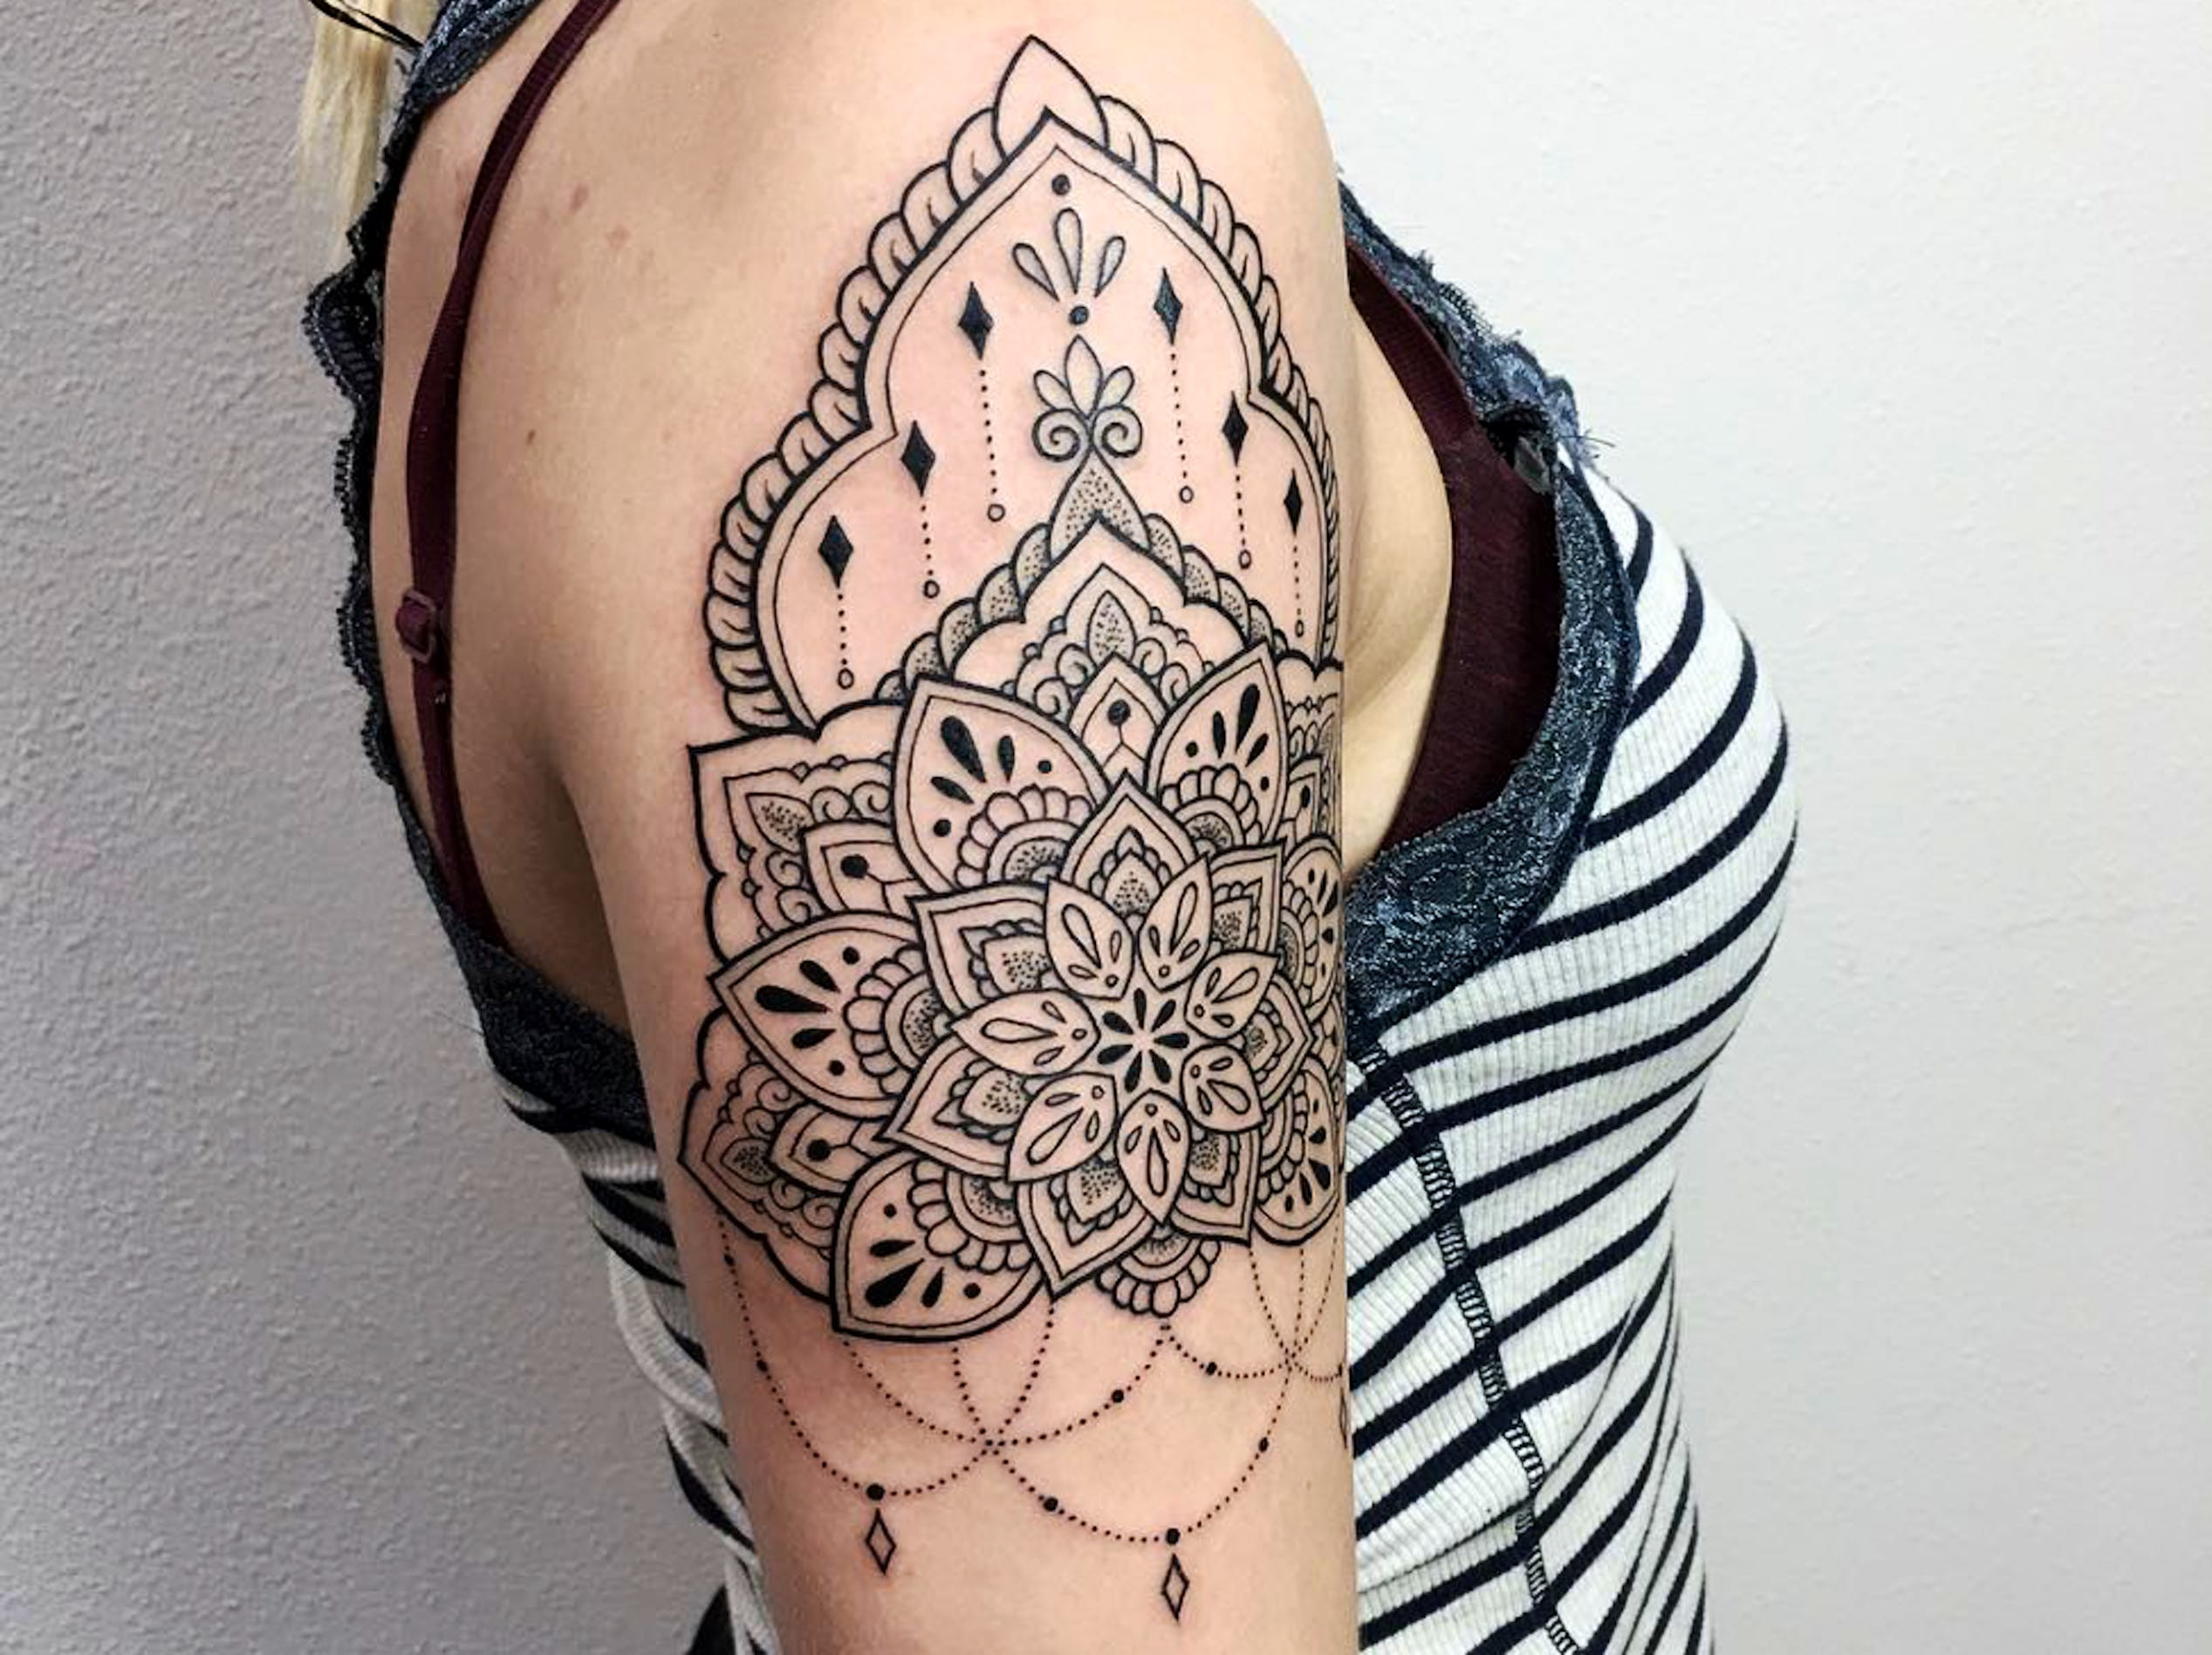 Artist James Nidecker's blackwork showcases New Amsterdam Tattoo Studio's ornamental strengths.